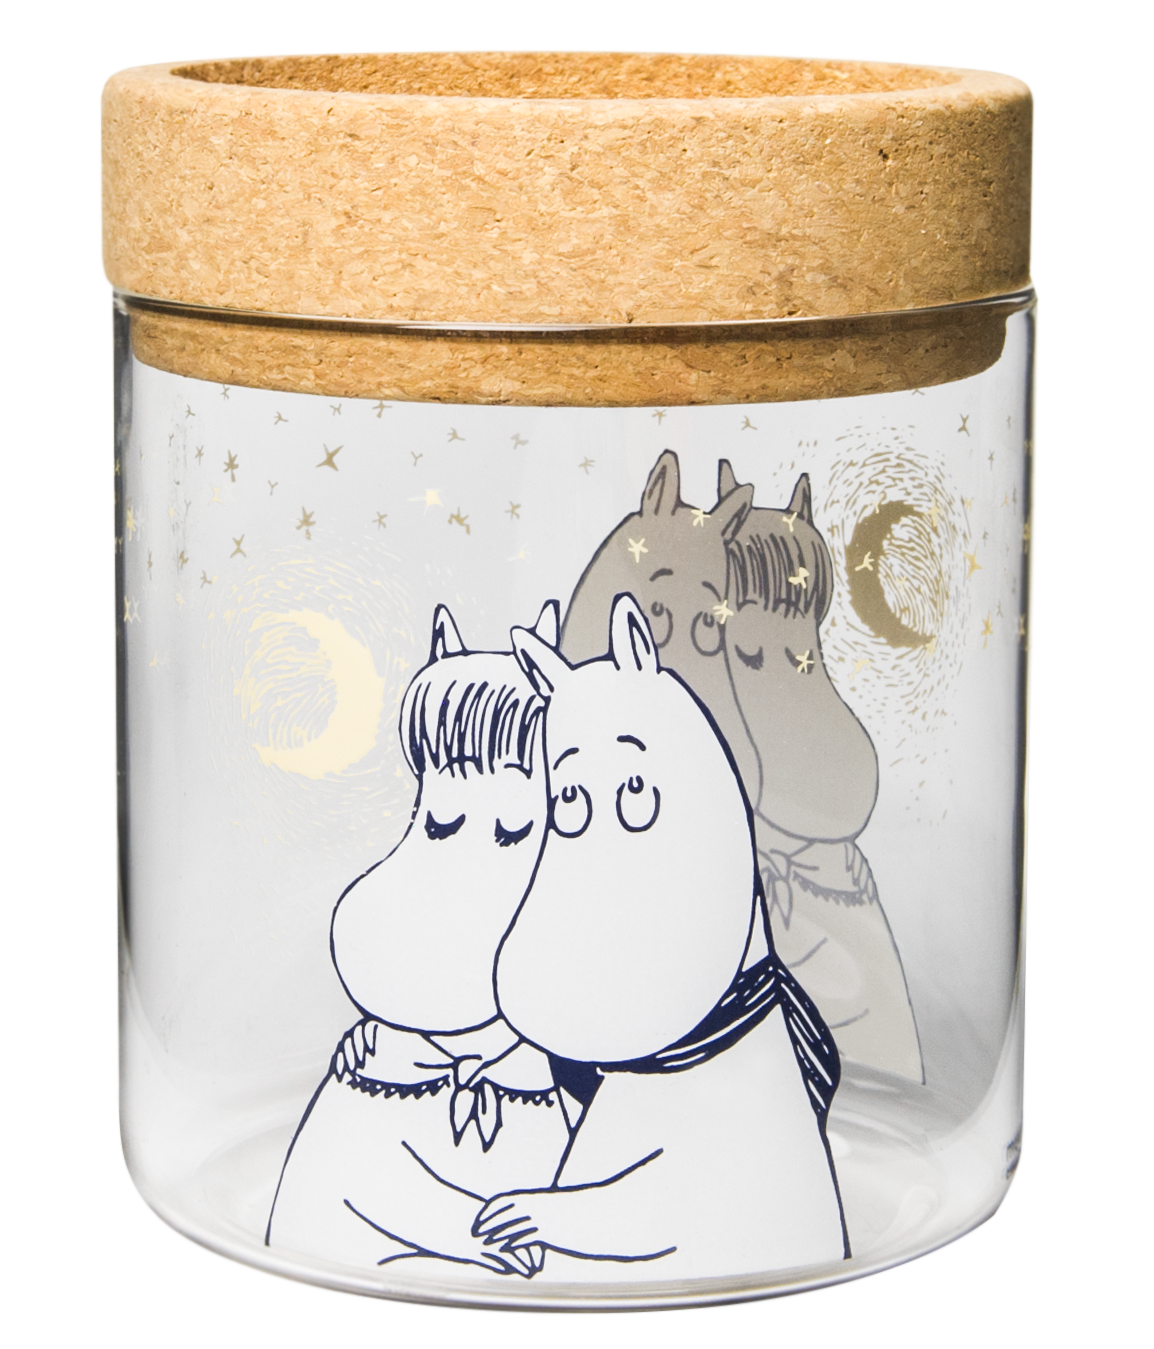 Muurla lantern/jar with cork stand/lid, Moomin Winter romance